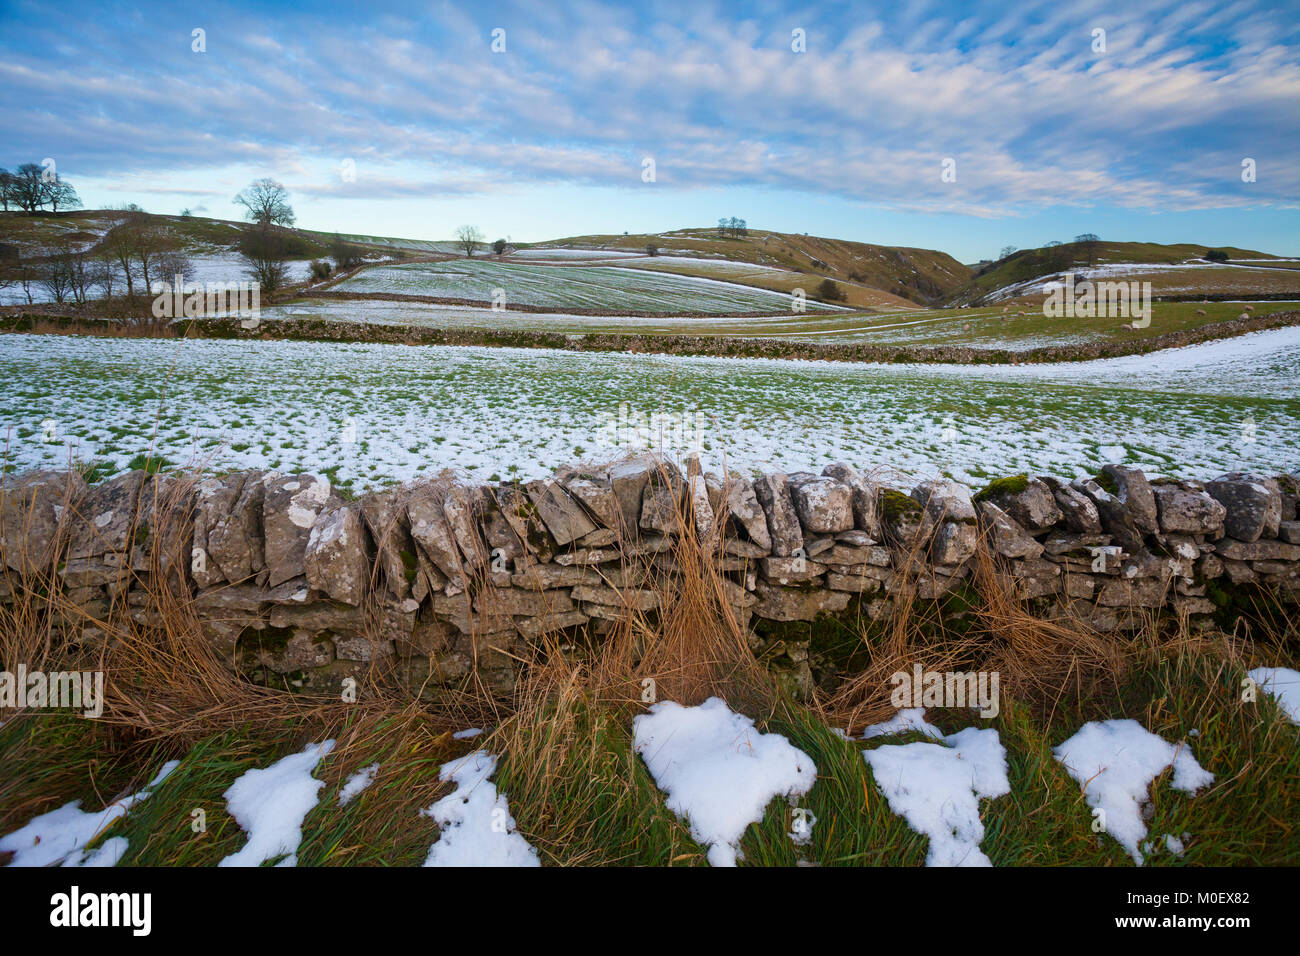 Parc national de Peak District, Stanshope, Ashbourne, Derbyshire, Royaume-Uni. Janvier Photo Stock